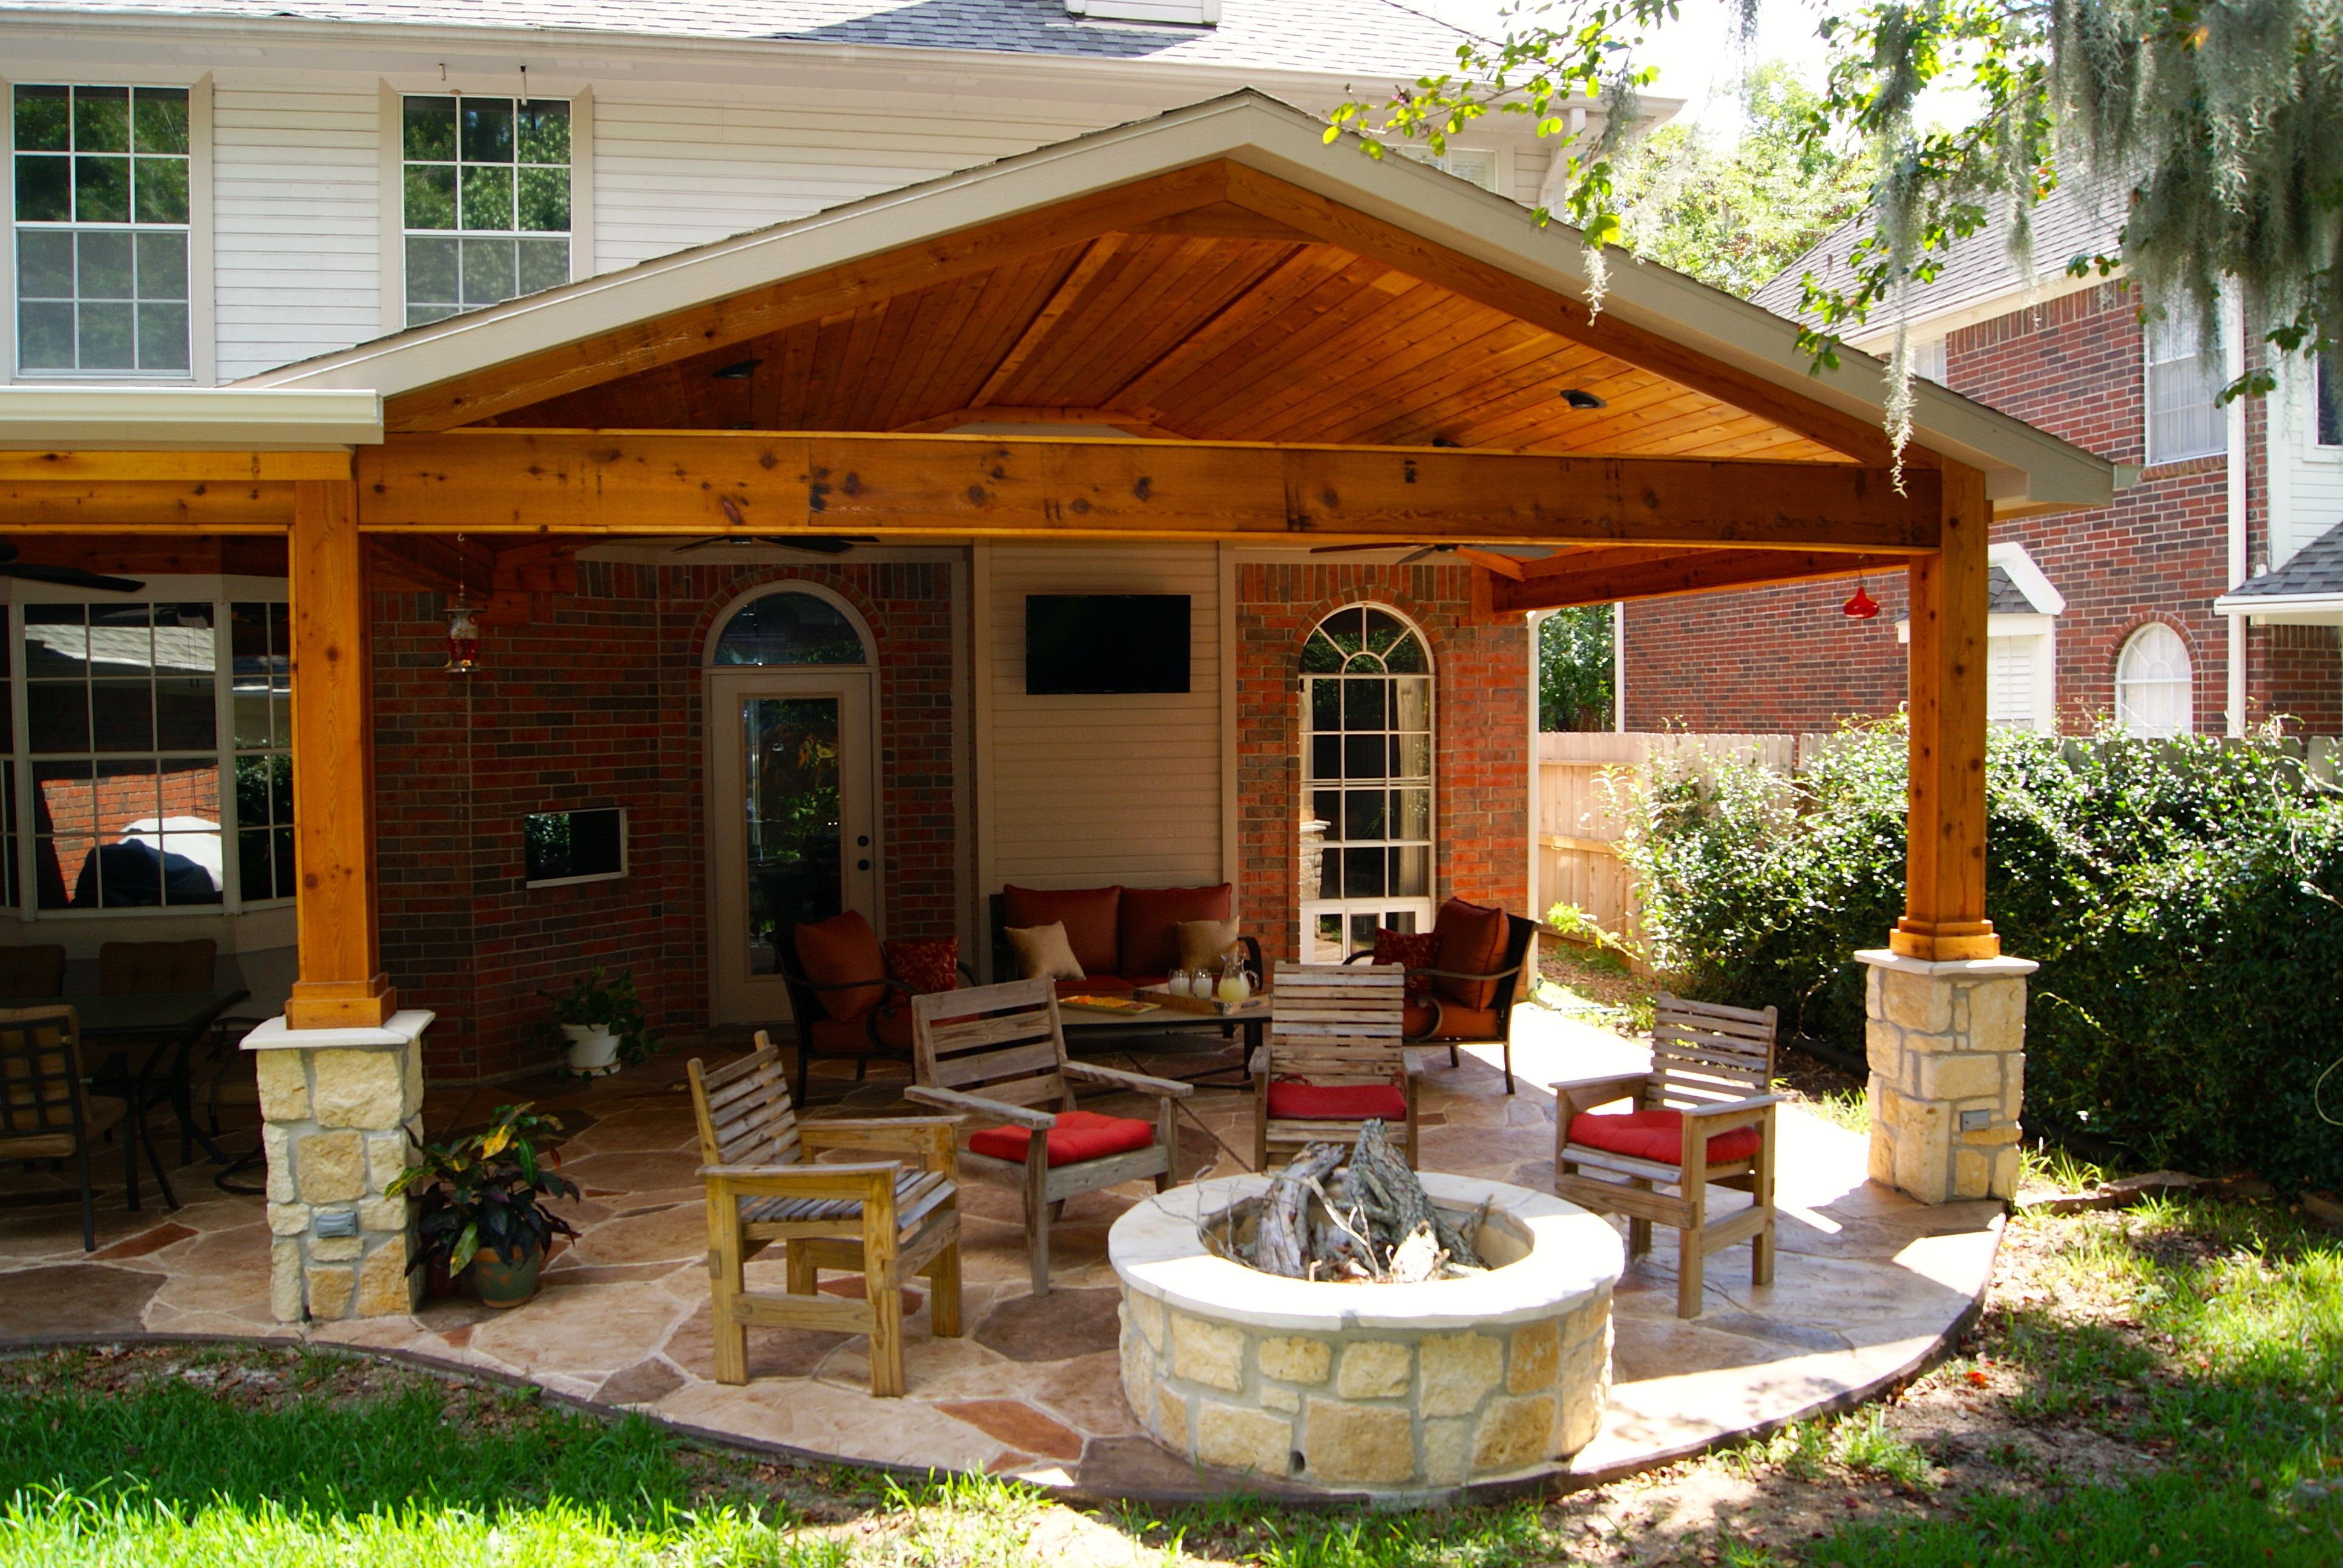 Outdoor Living Room And Fire Pit Greatwood In Sugar